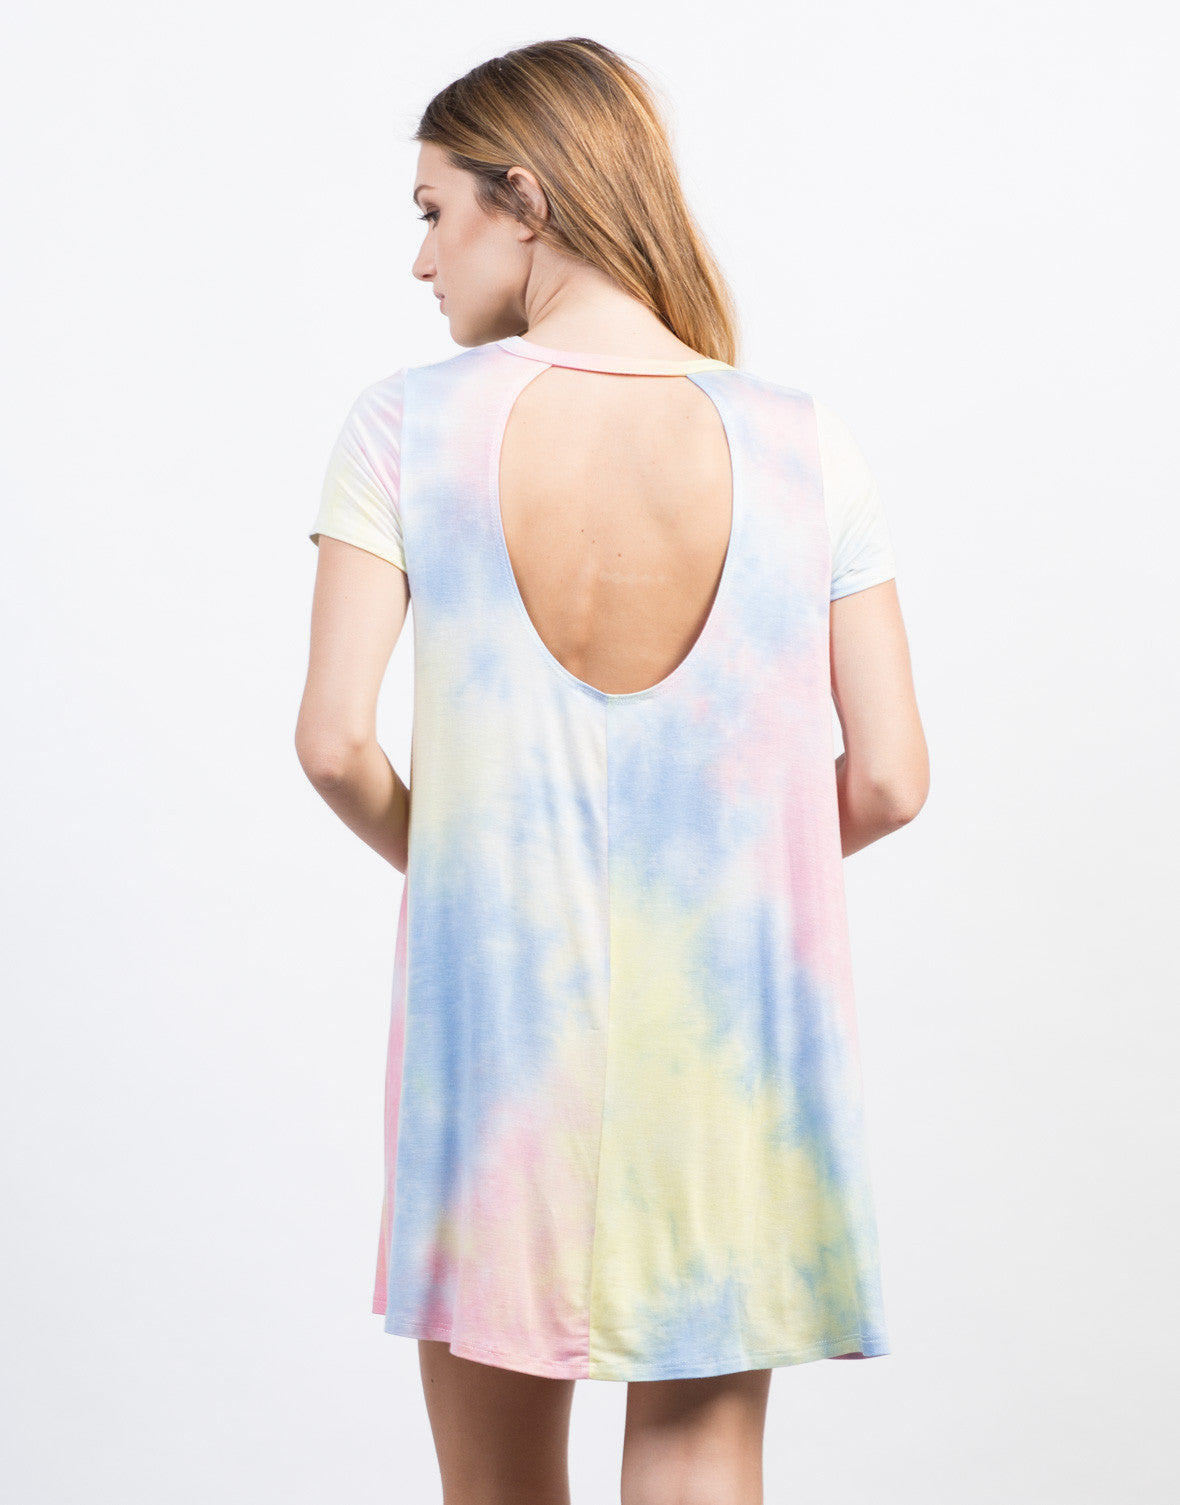 Back View of Tie-Dye Dress